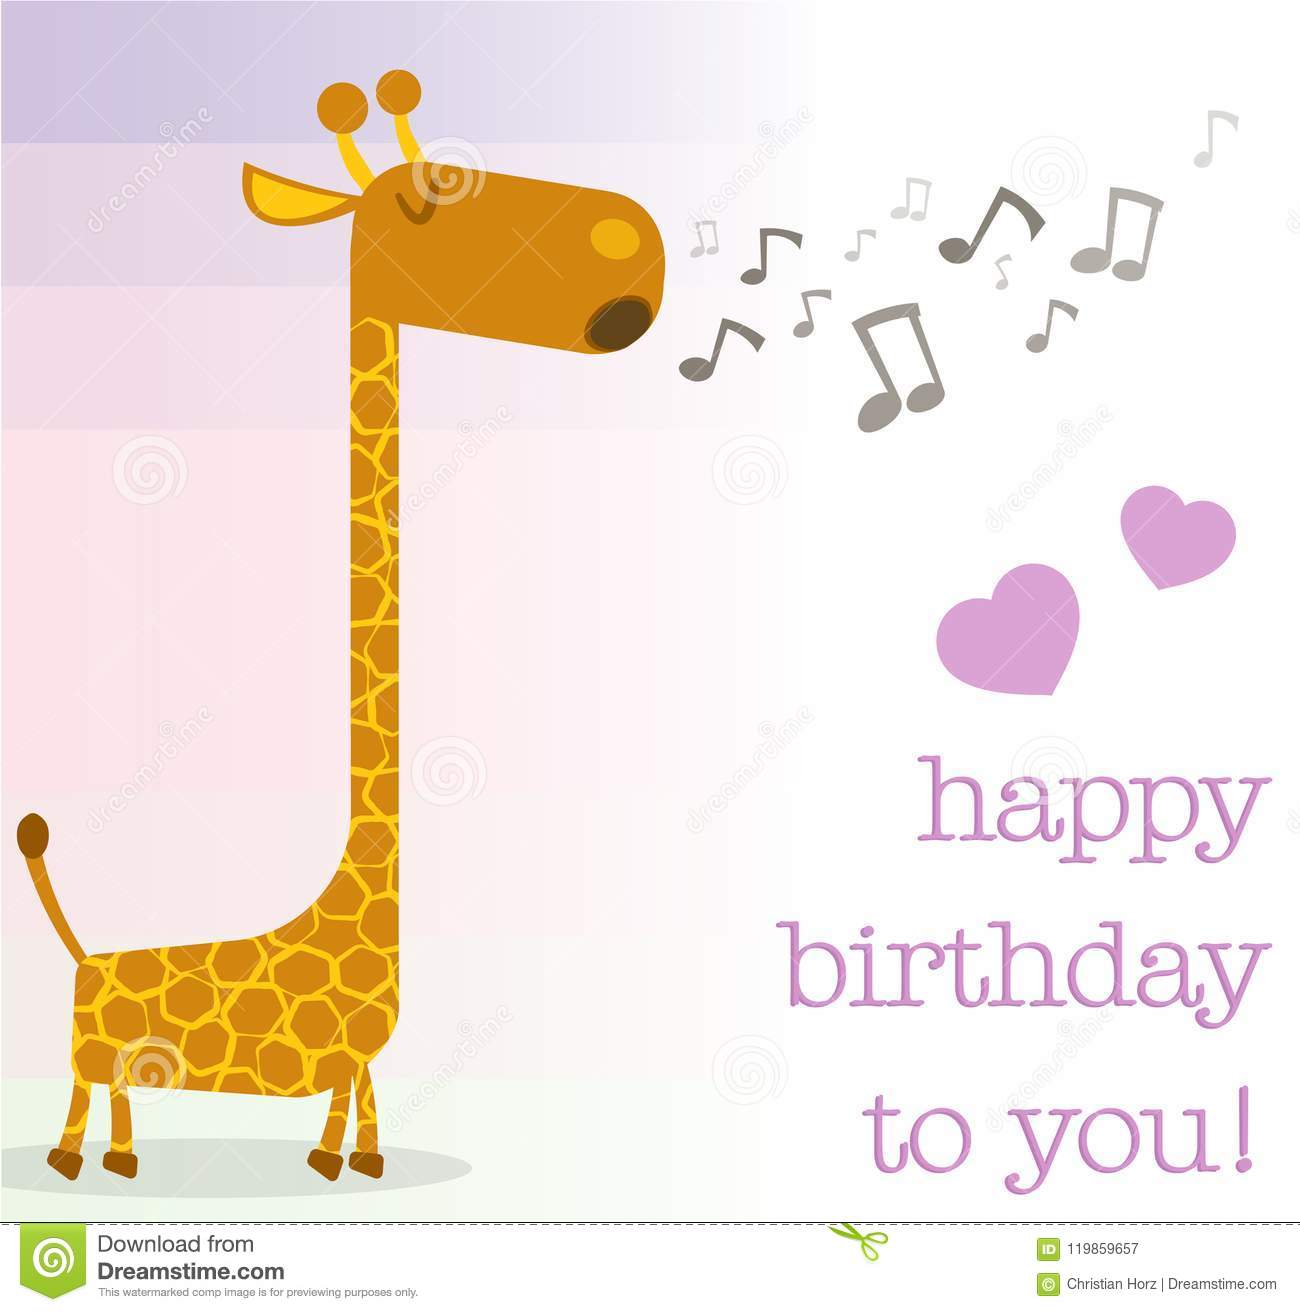 Happy Birthday Greeting Card With Singing Giraffe Stock Vector